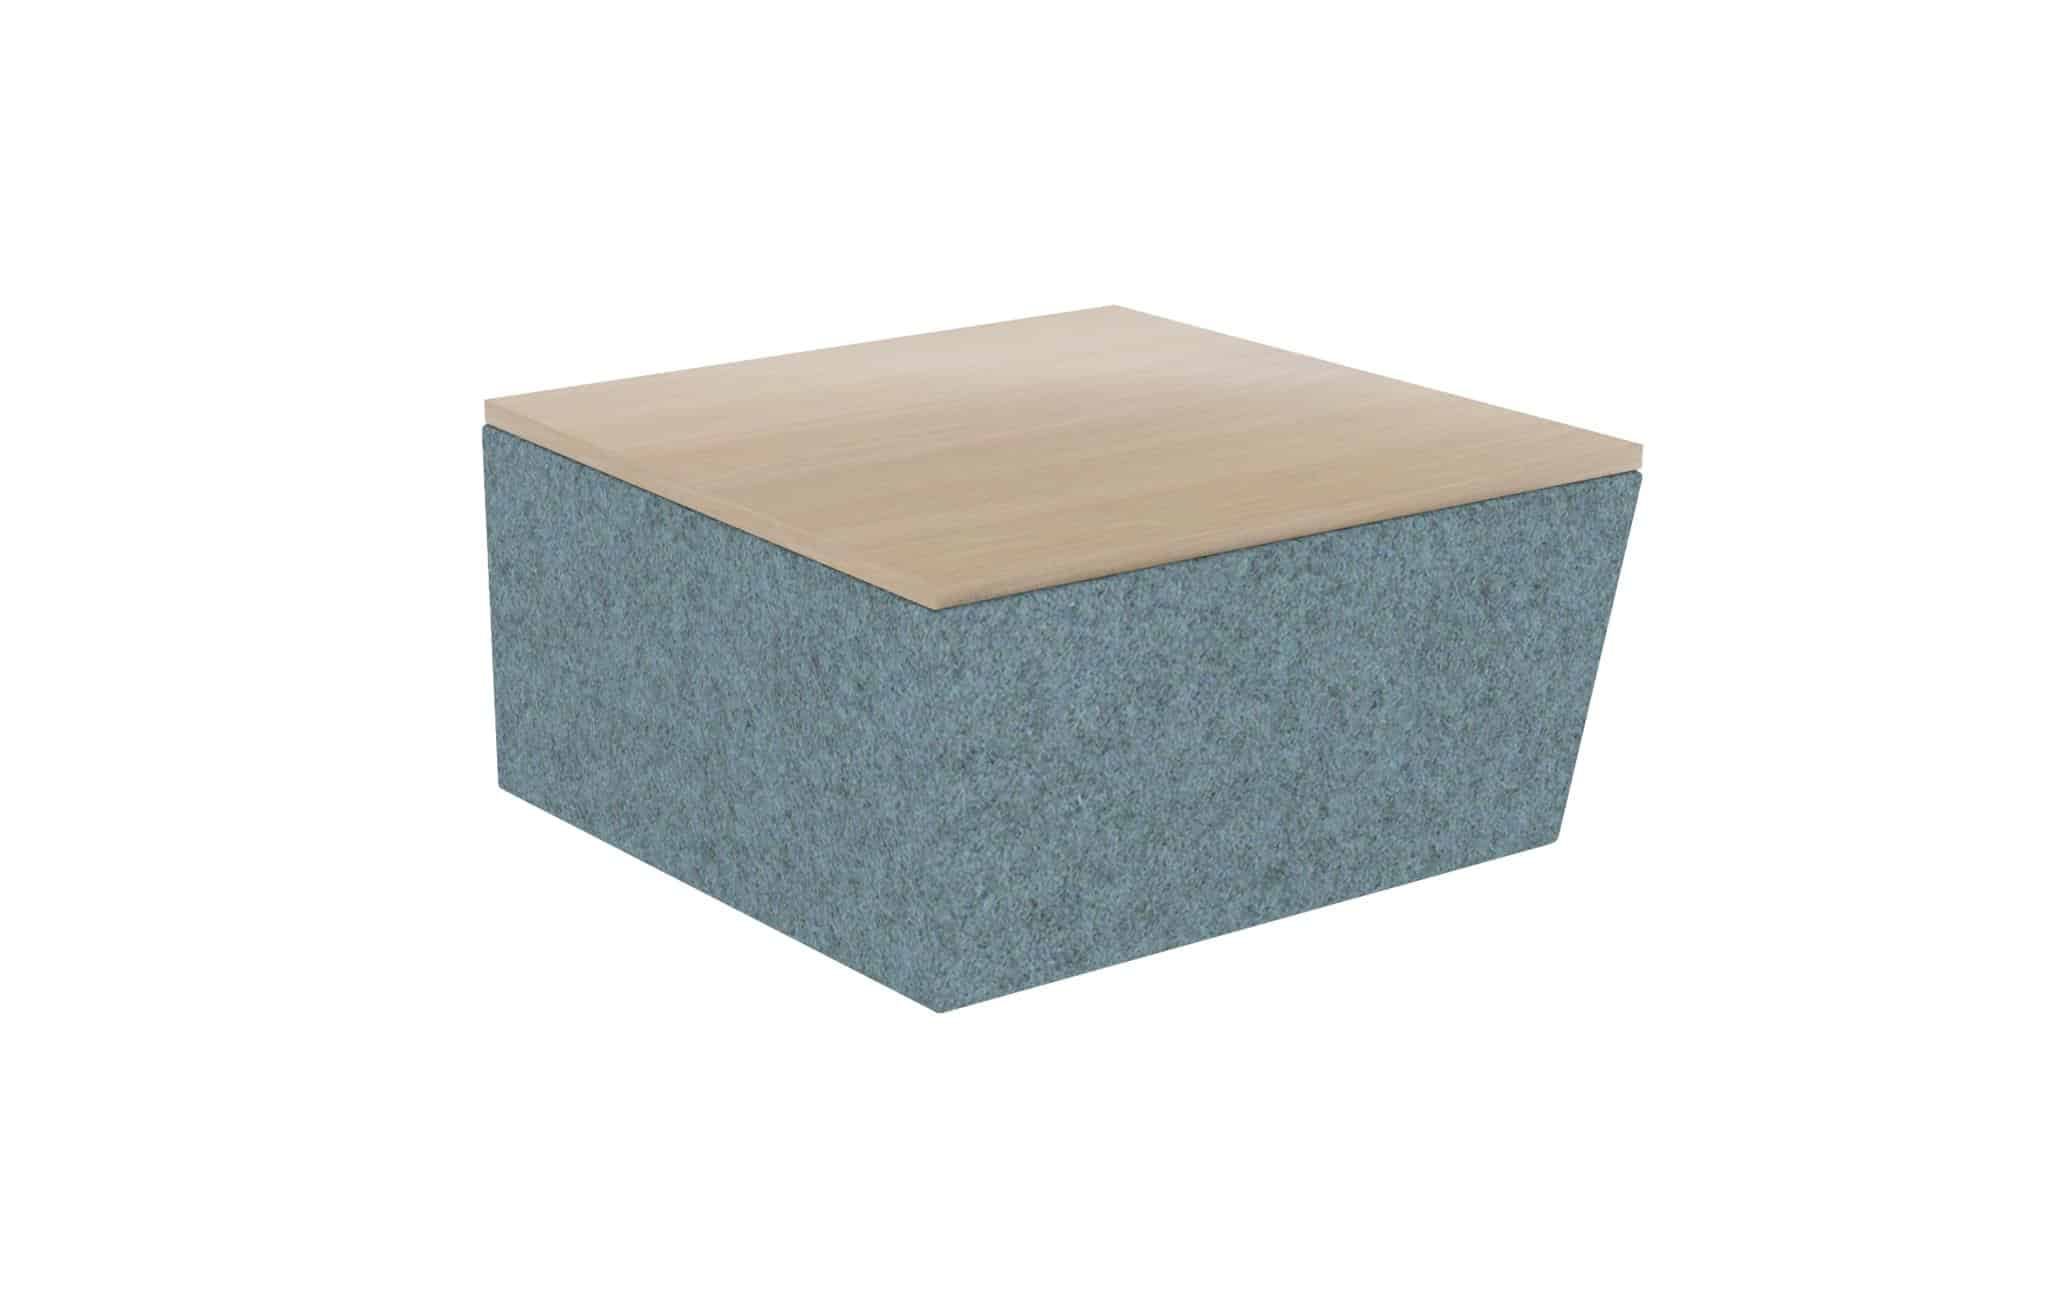 Hickory Contract UPpJr. Table 3232-1S-T